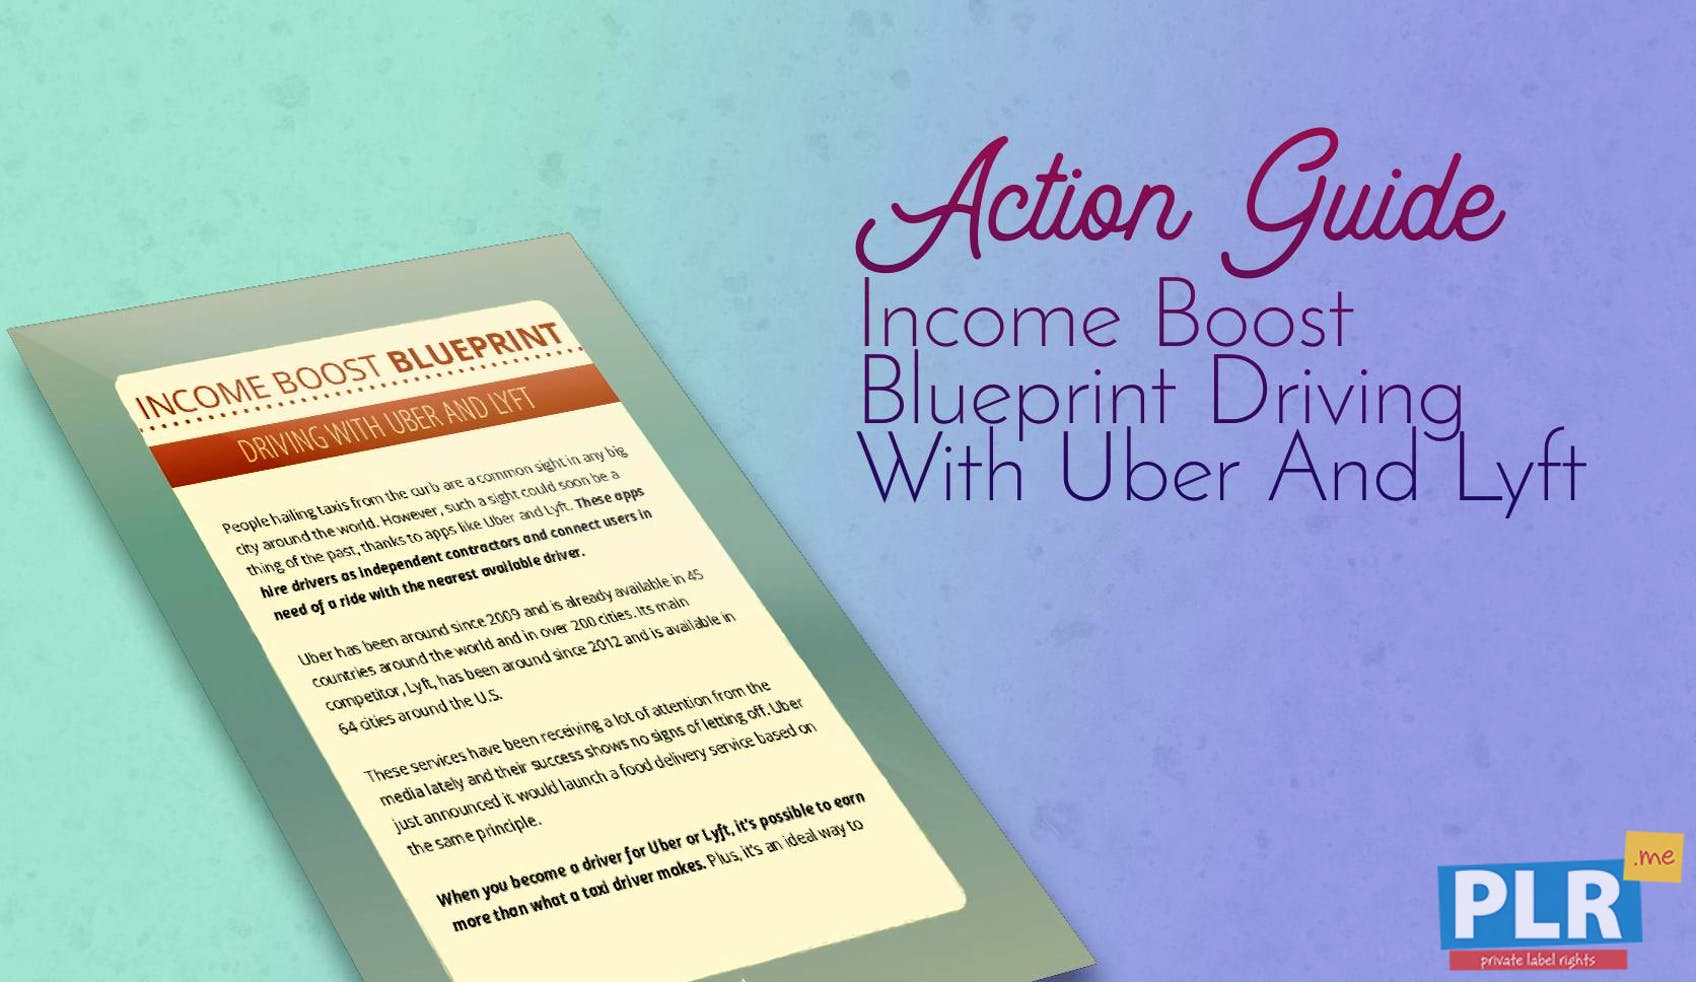 Income Boost Blueprint Driving With Uber And Lyft